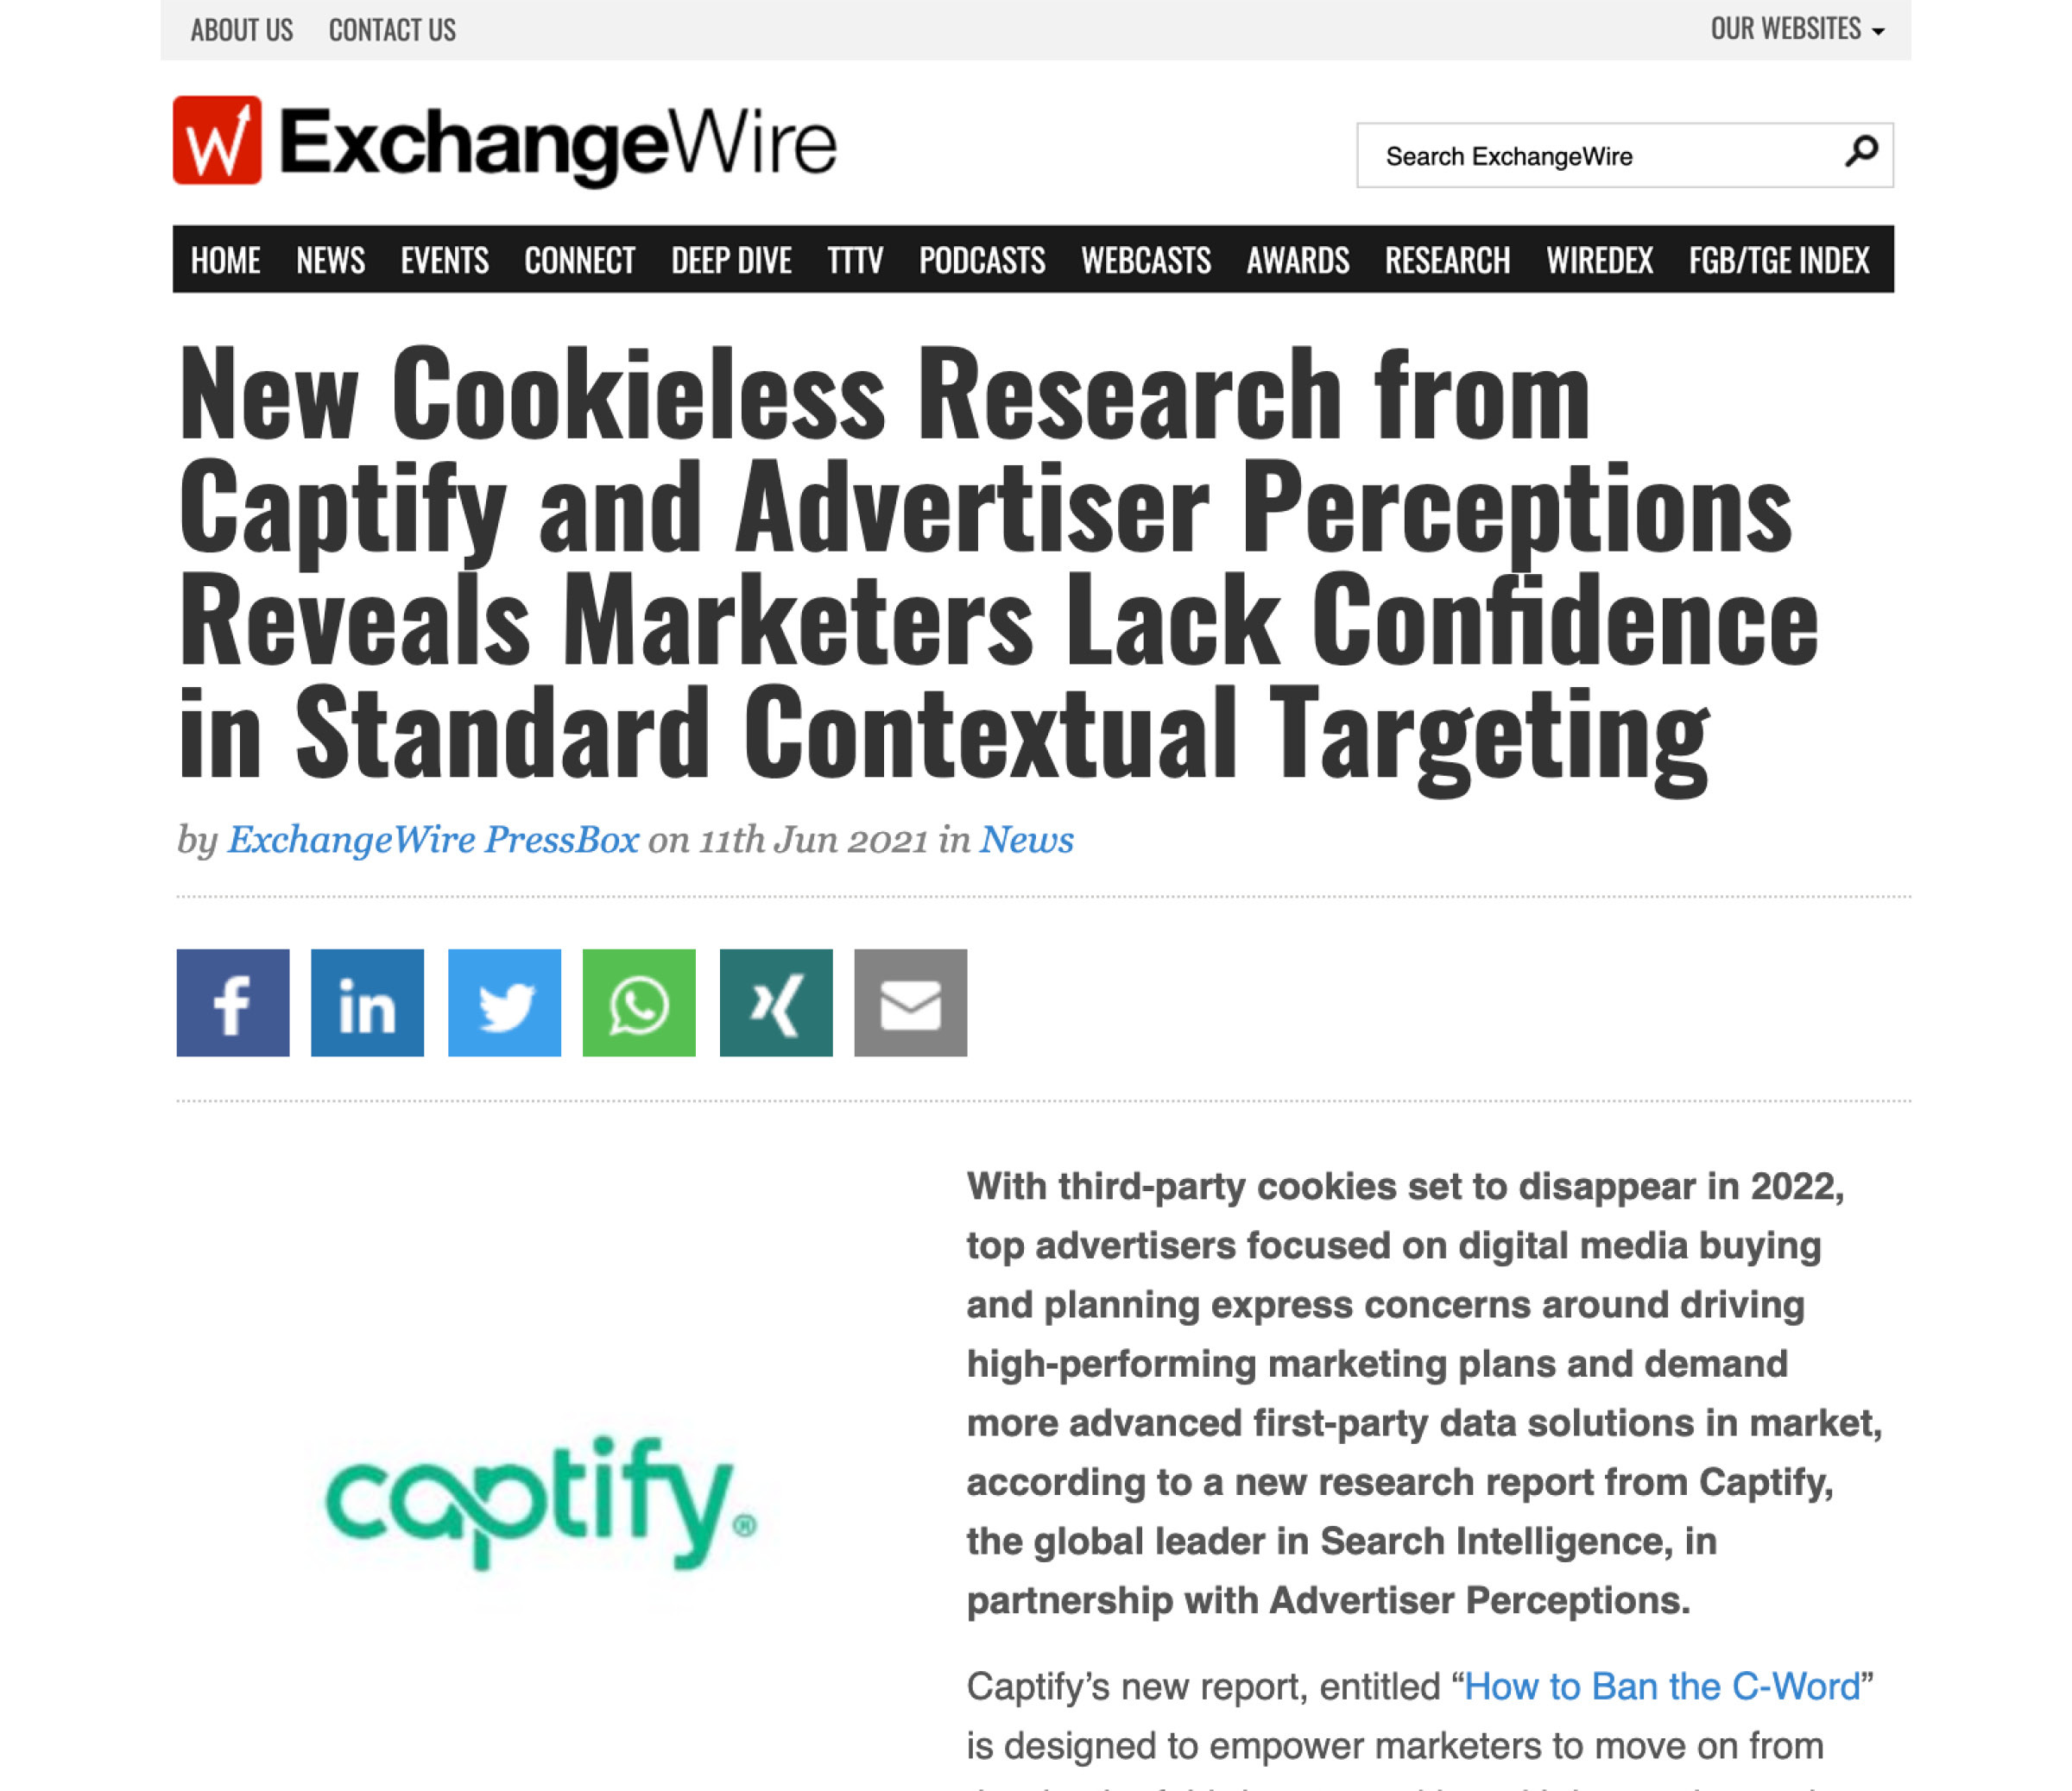 ExchangeWire: New Cookieless Research from Captify and Advertiser Perceptions Reveals Marketers Lack Confidence in Standard Contextual Targeting